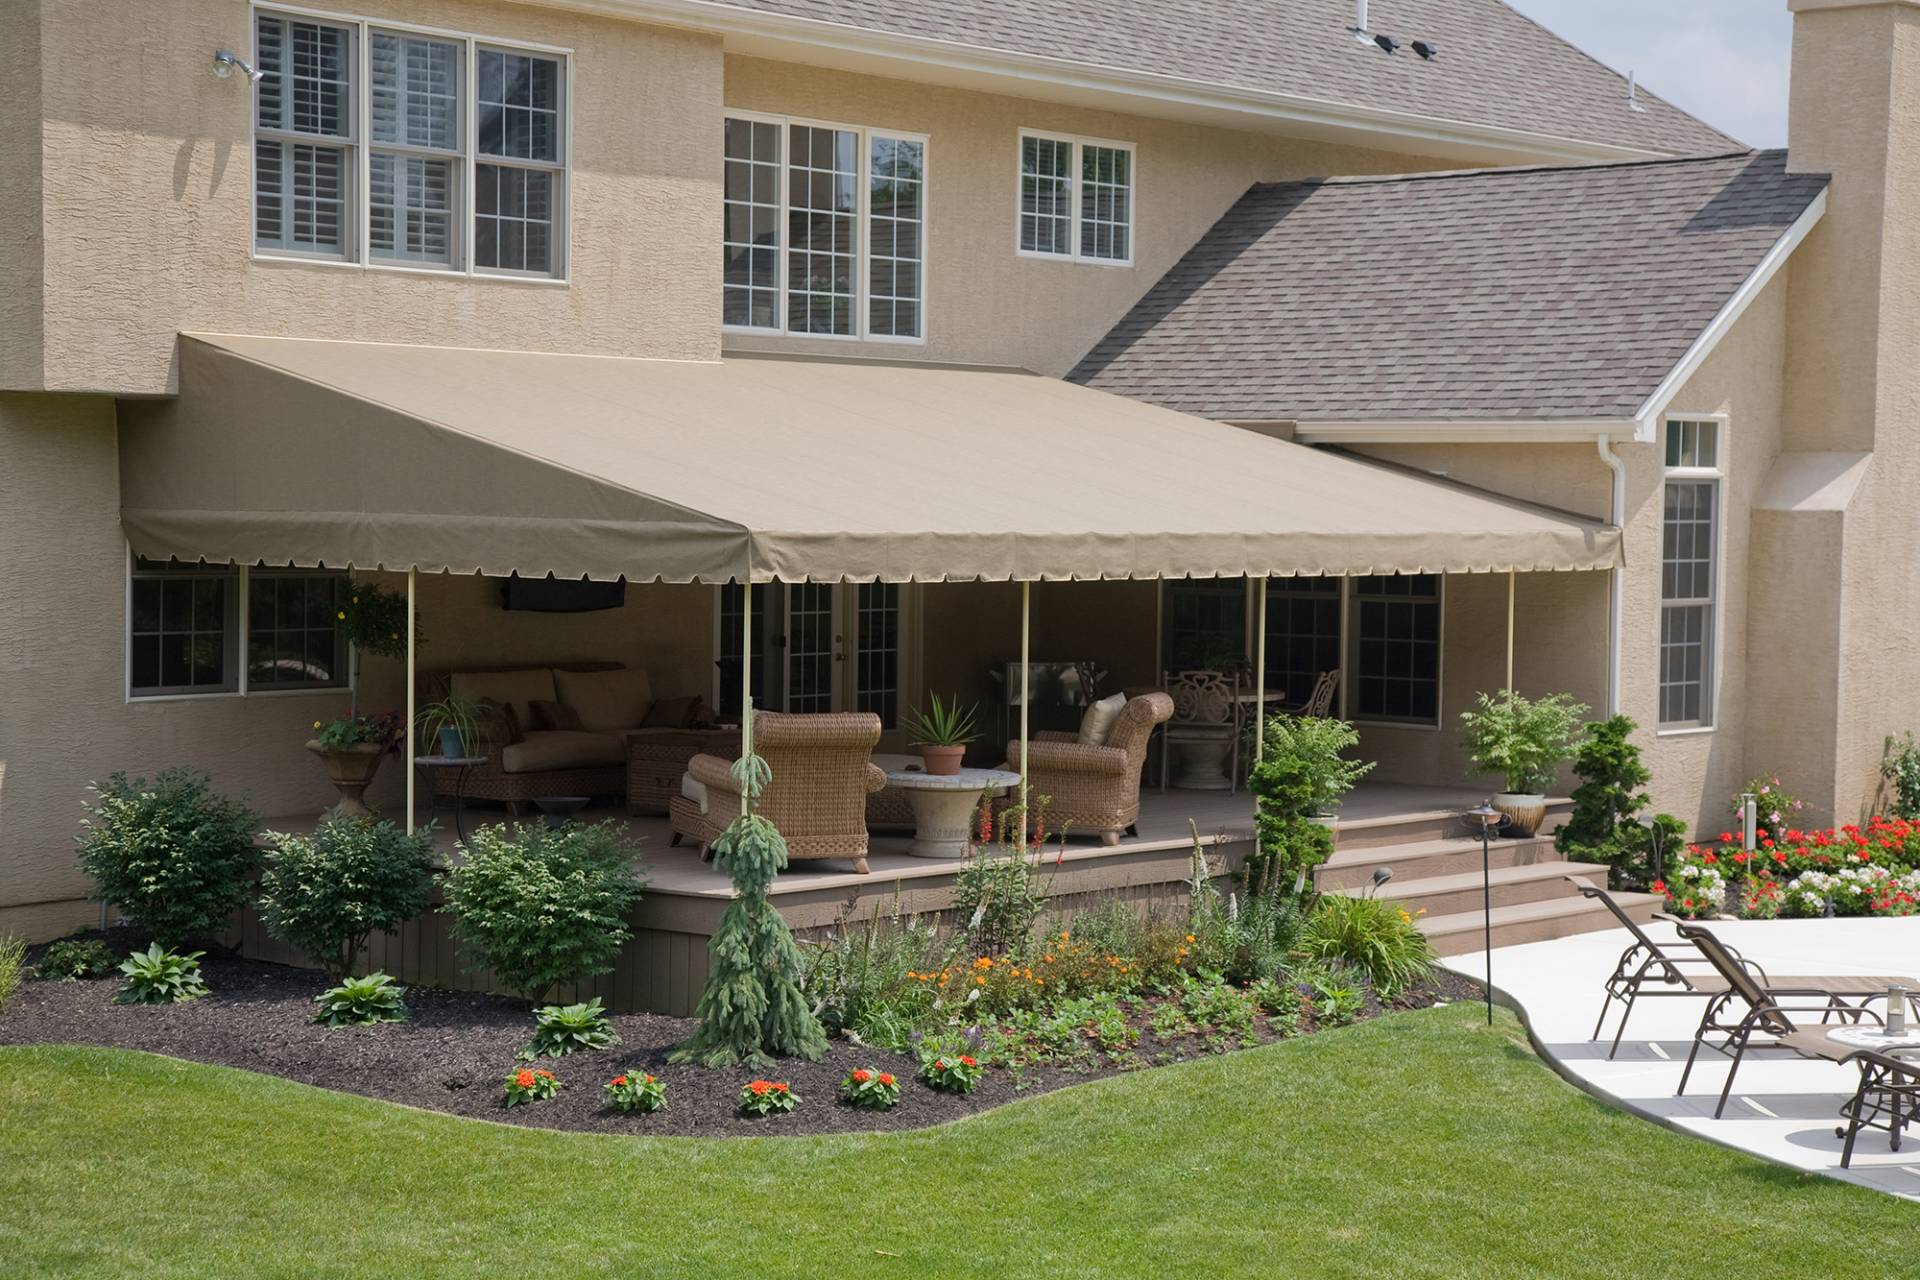 Deck Canopy u2013 Wall Mount Downingtown PA & Deck Canopy - Wall Mount Downingtown PA | Kreideru0027s Canvas Service ...